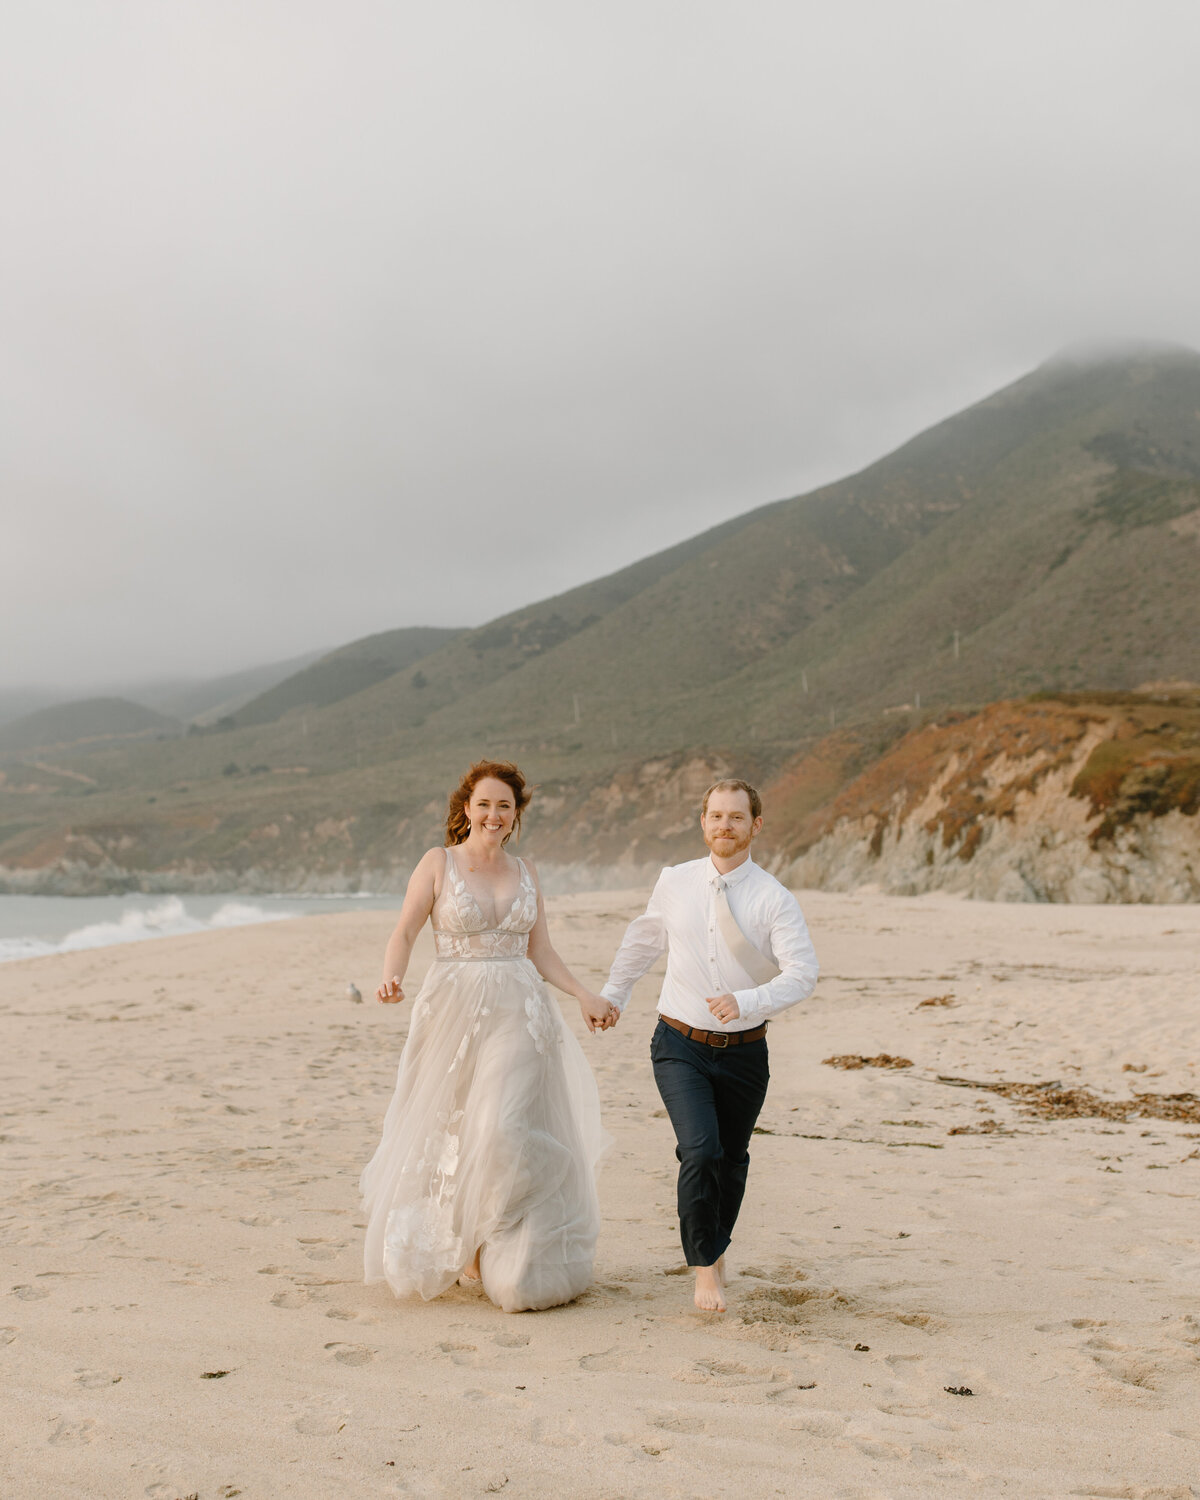 Laura & Harrison - Glen Oaks Big Sur Elopement - Tess Laureen Photography @tesslaureen - 354